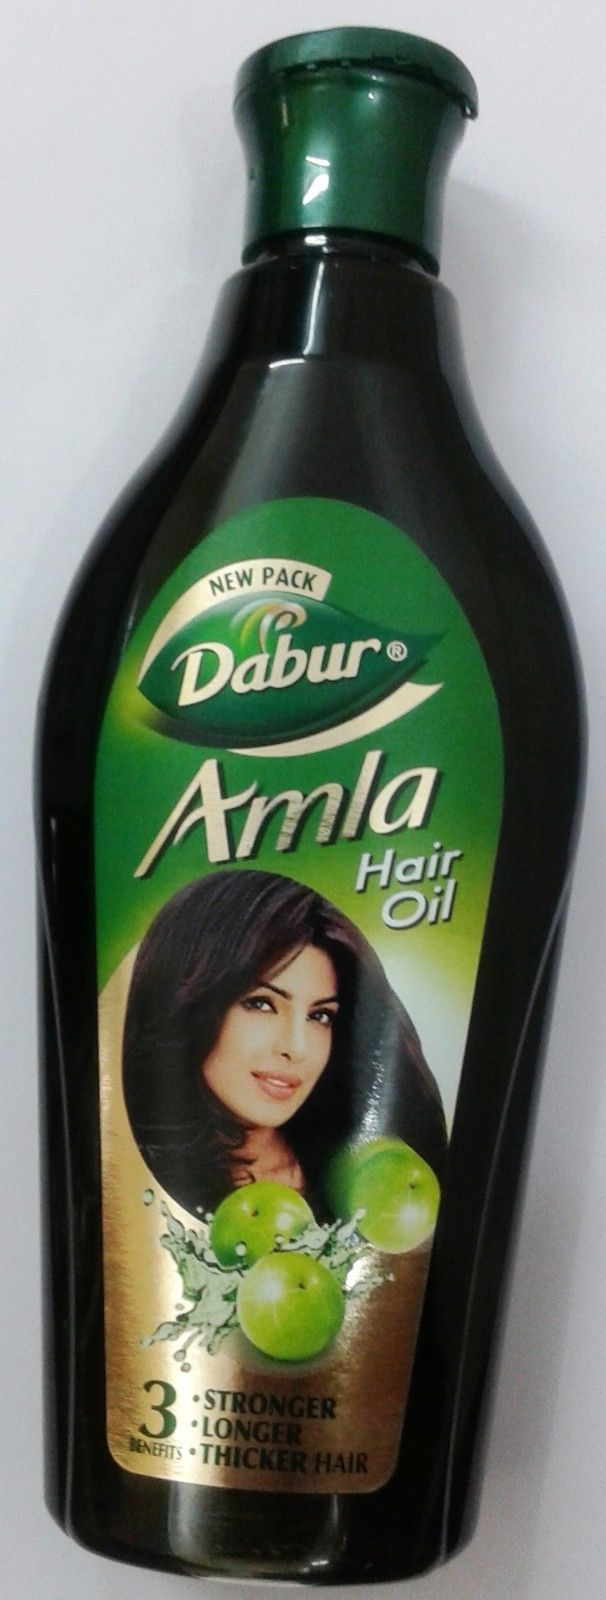 "Dabur Amla Hair Oil Natural Goodness of Indian Gooseberry for Beautiful Hair | eBay 55 ש""ח"